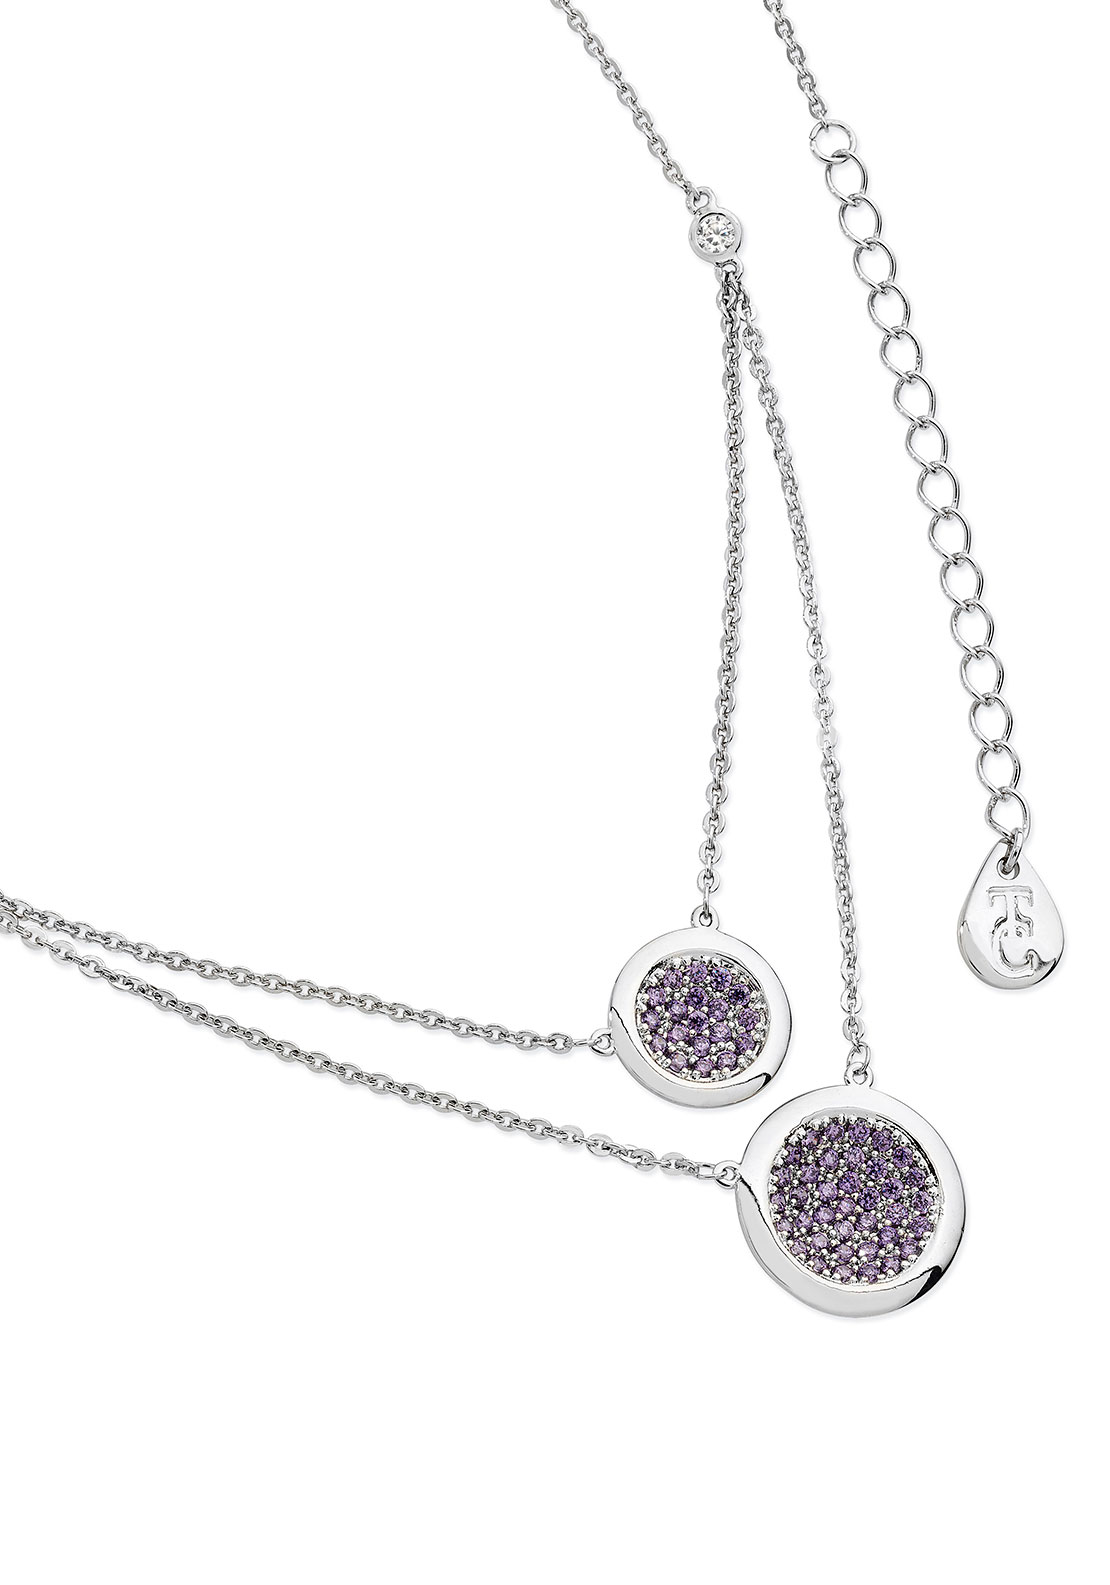 Tipperary Crystal Lavender Double Moon Drop Necklace